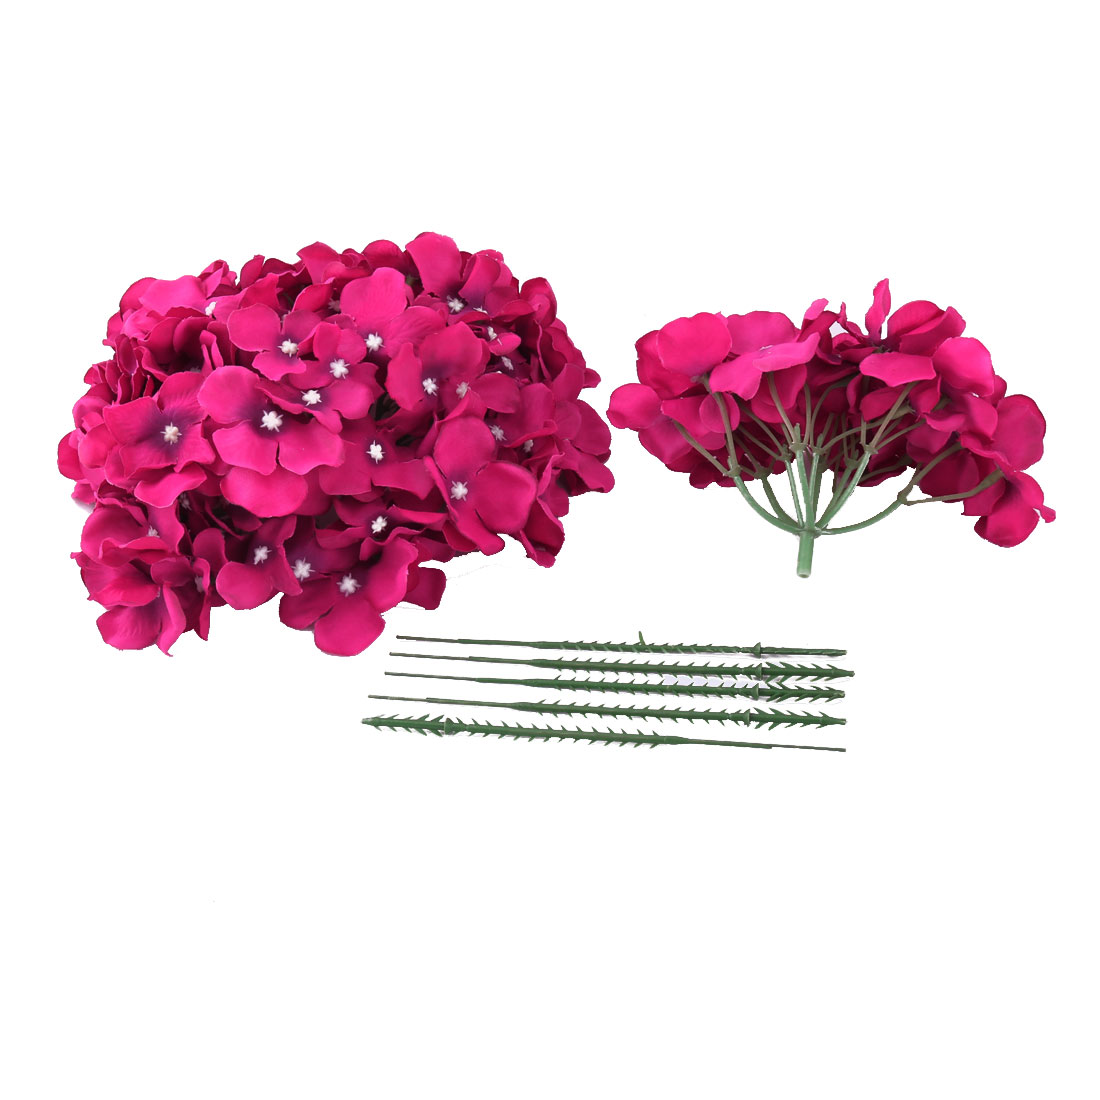 Festival Celebration Aritificial Flower Handcraft Garland Bouquet Decor Fuchsia 5pcs